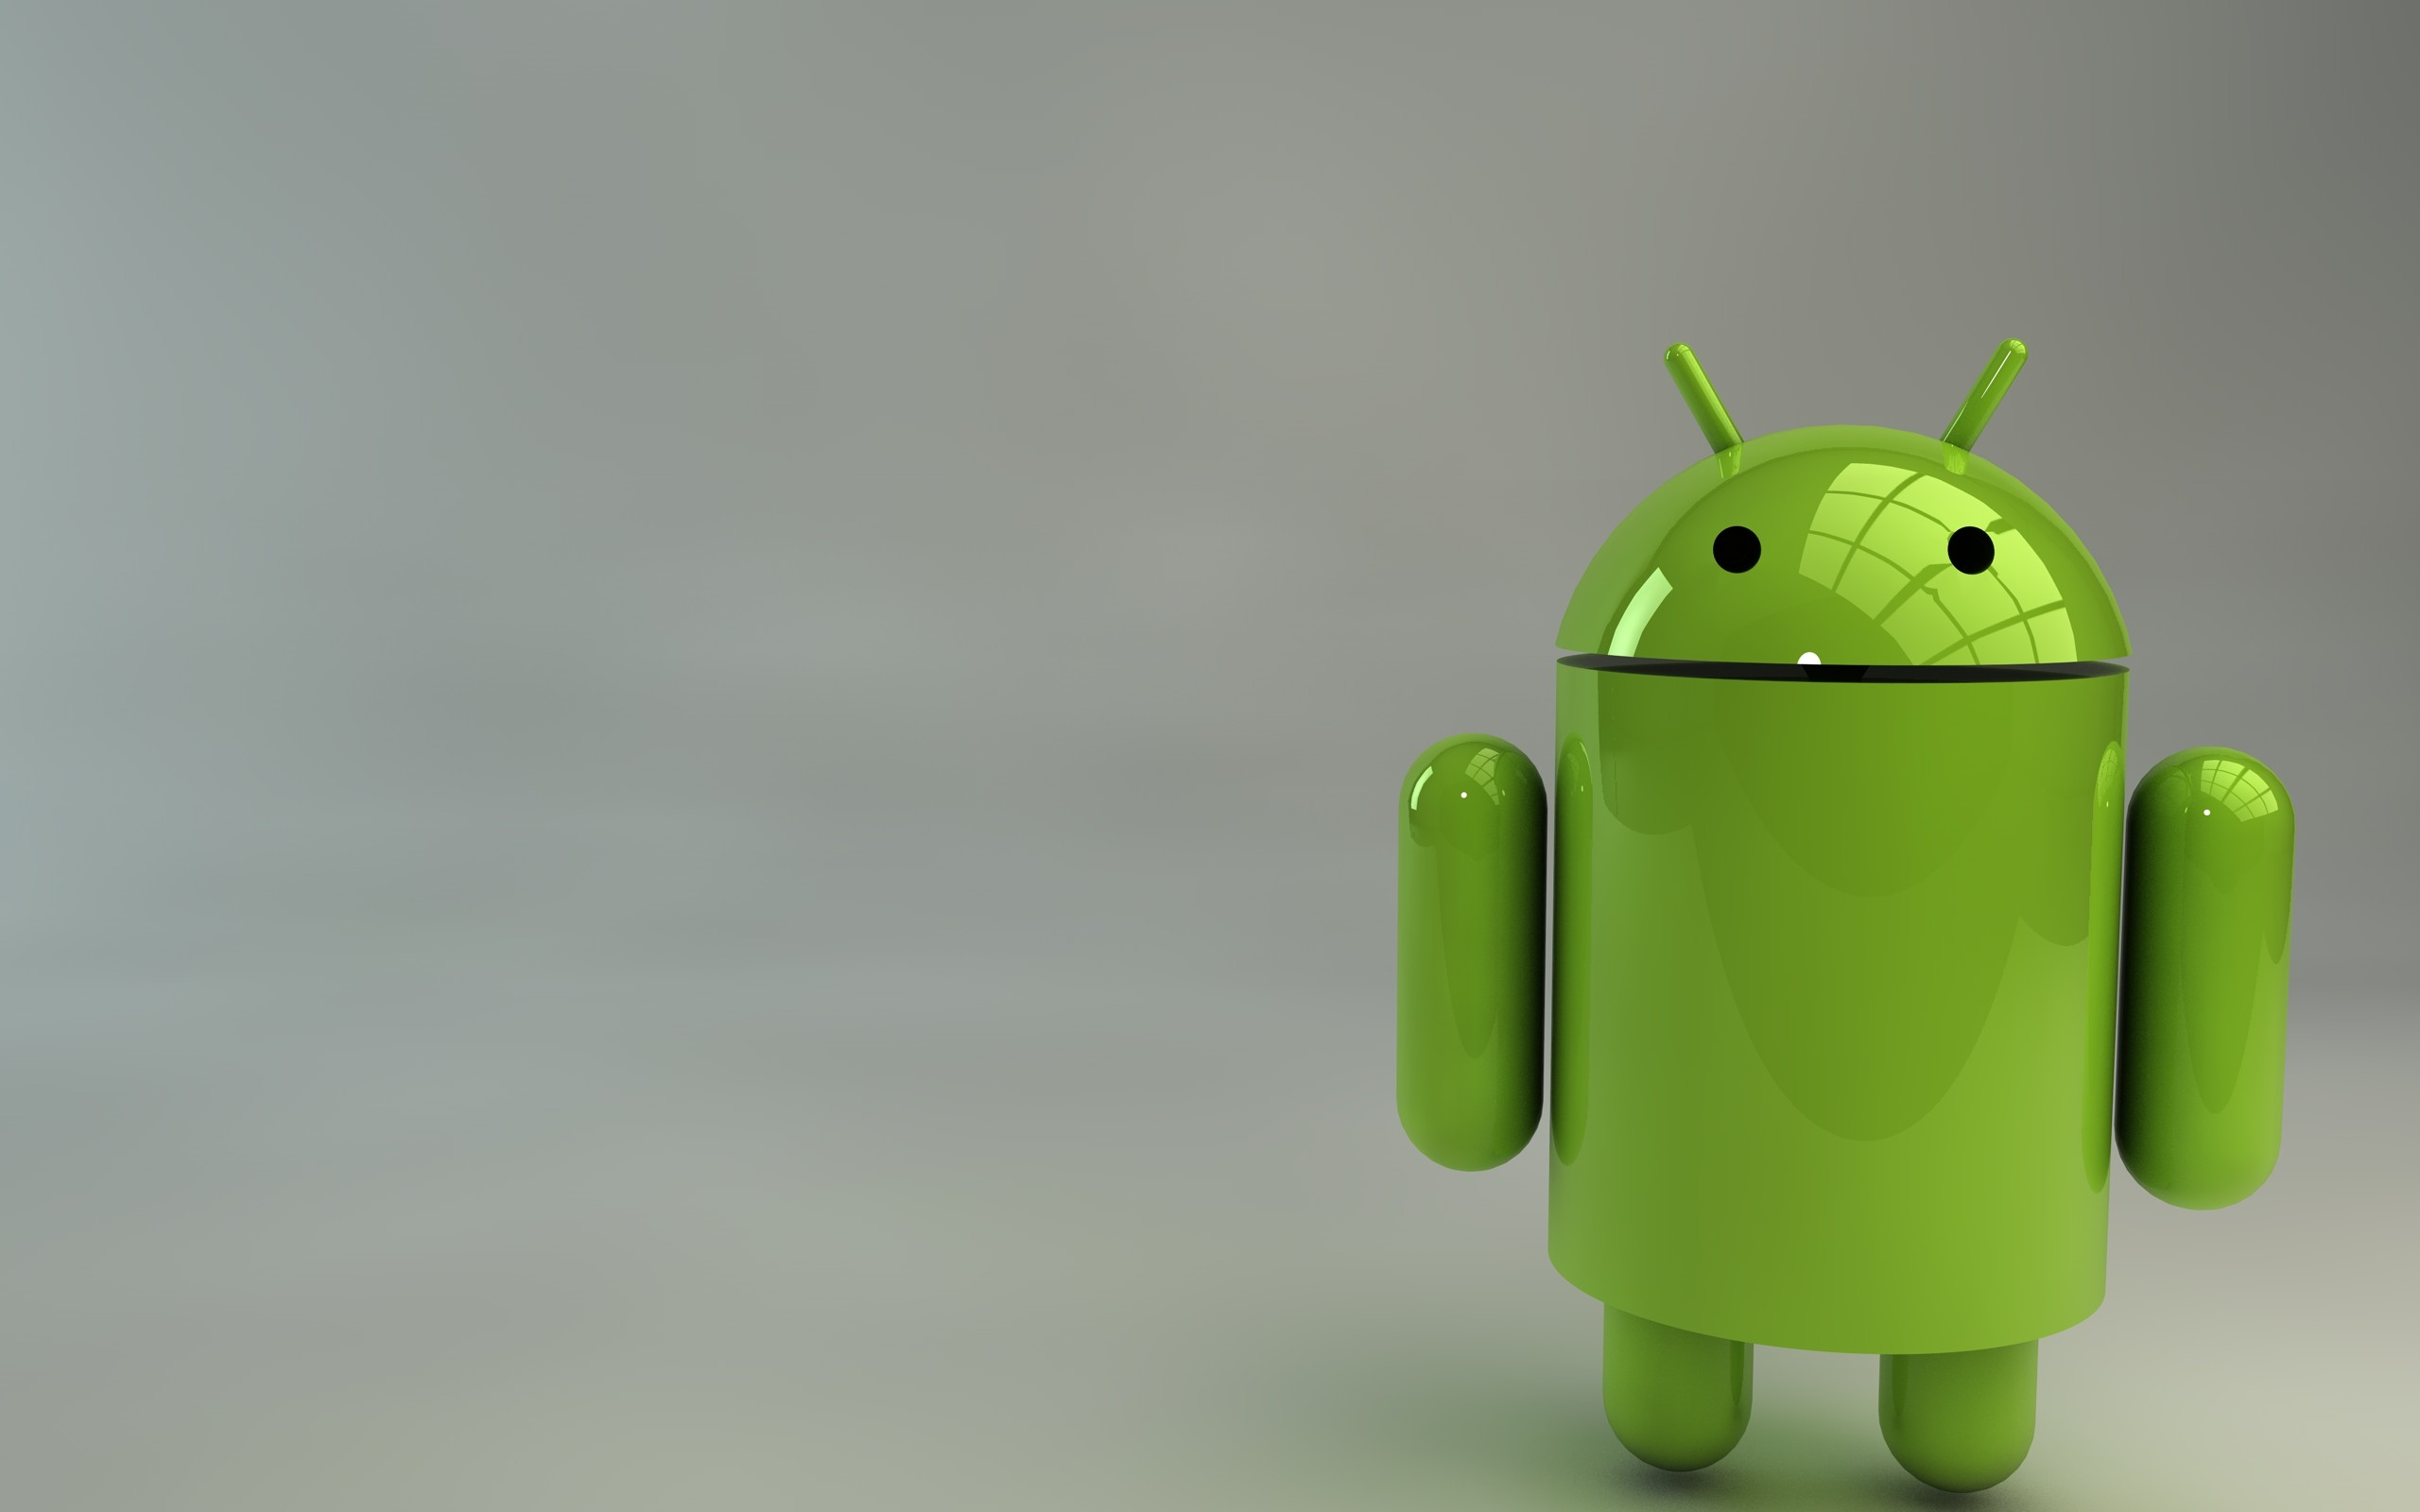 Colourful 3D Android Wallpaper Desktop Backgrounds 2560x1600